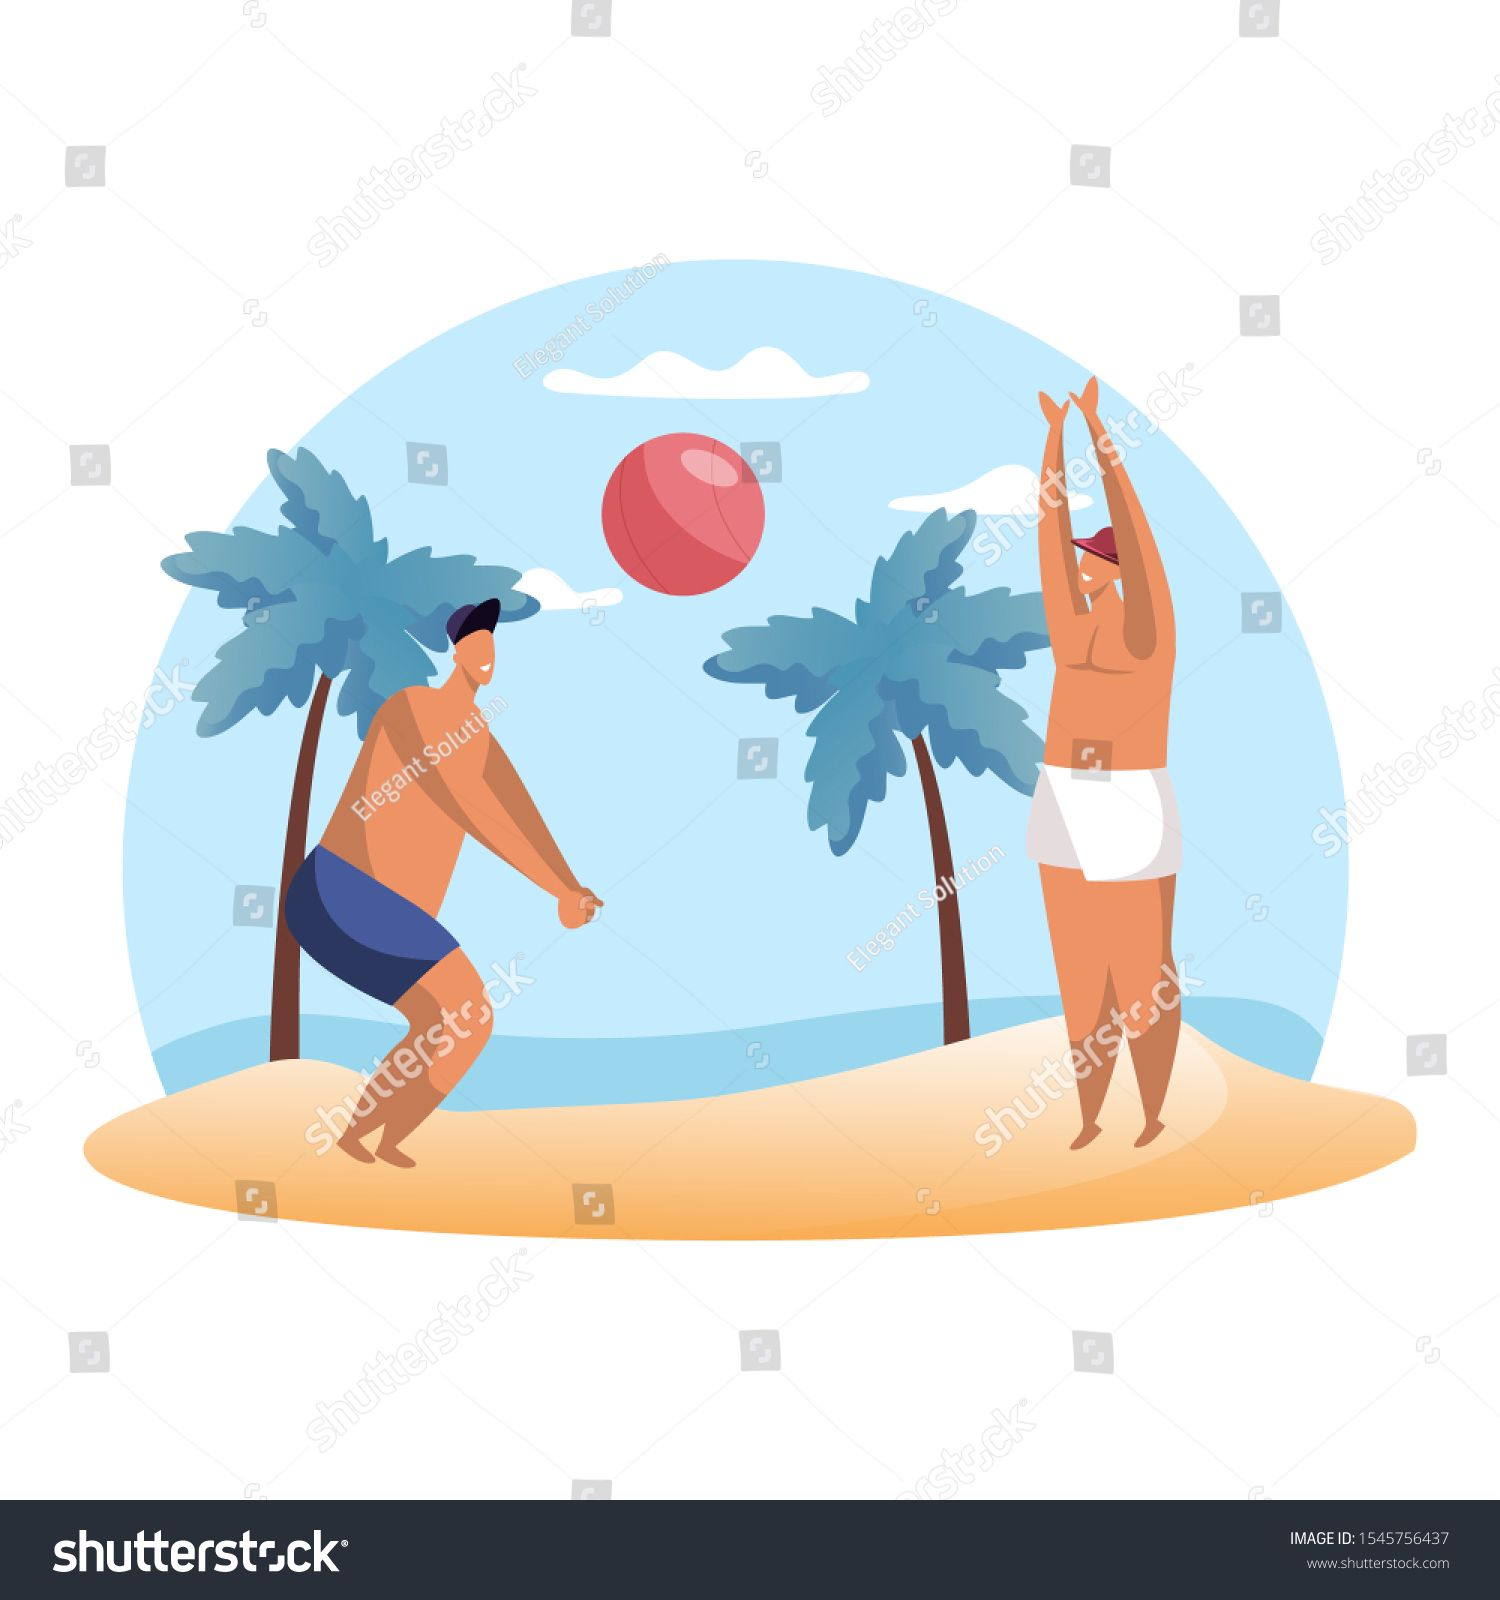 Cartoon People Playing Summer Volleyball On Beach Man Playing Hand Ball Sport Summertime Hobby Volley Play And Game Ex Cartoon People Cartoon Sea And Ocean